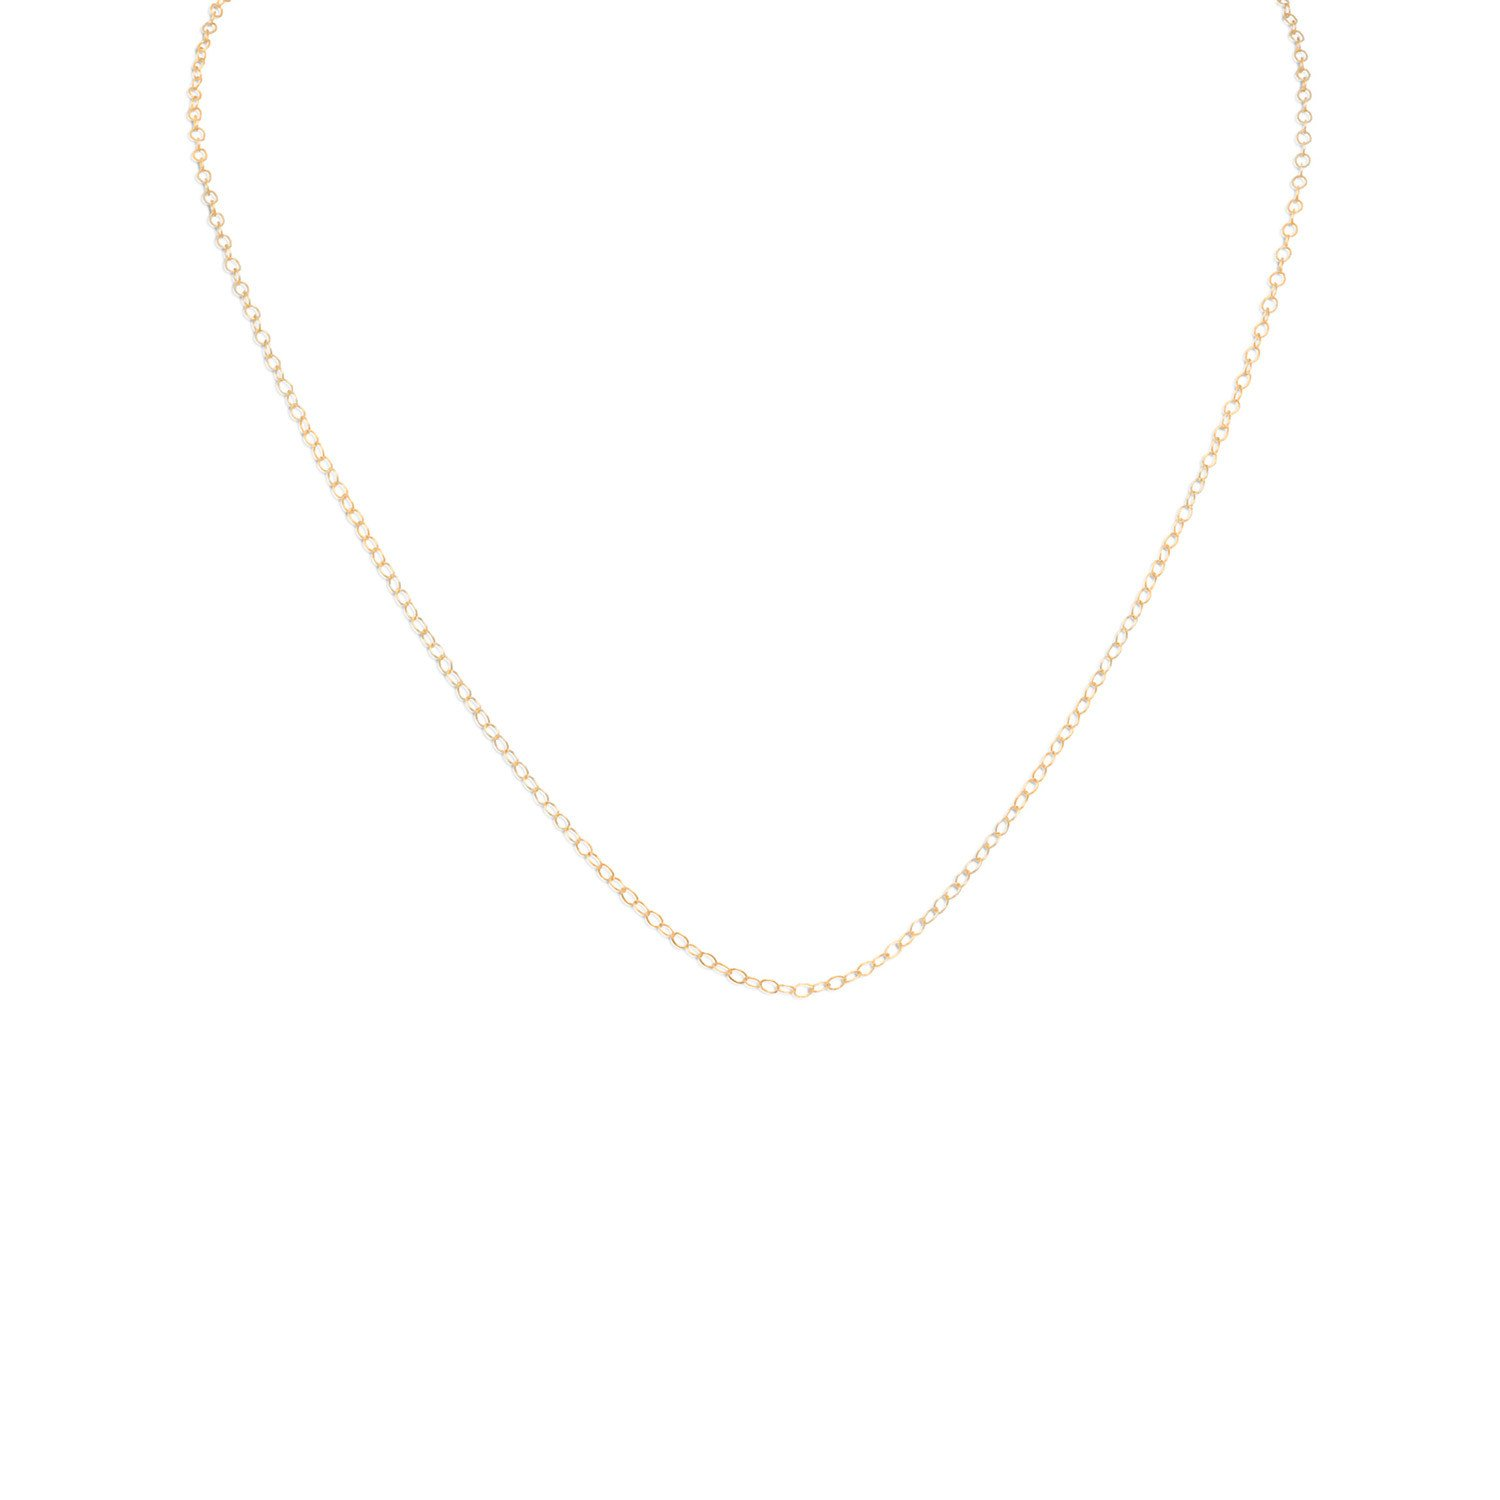 13″+1″ 14/20 Gold Filled Cable Chain